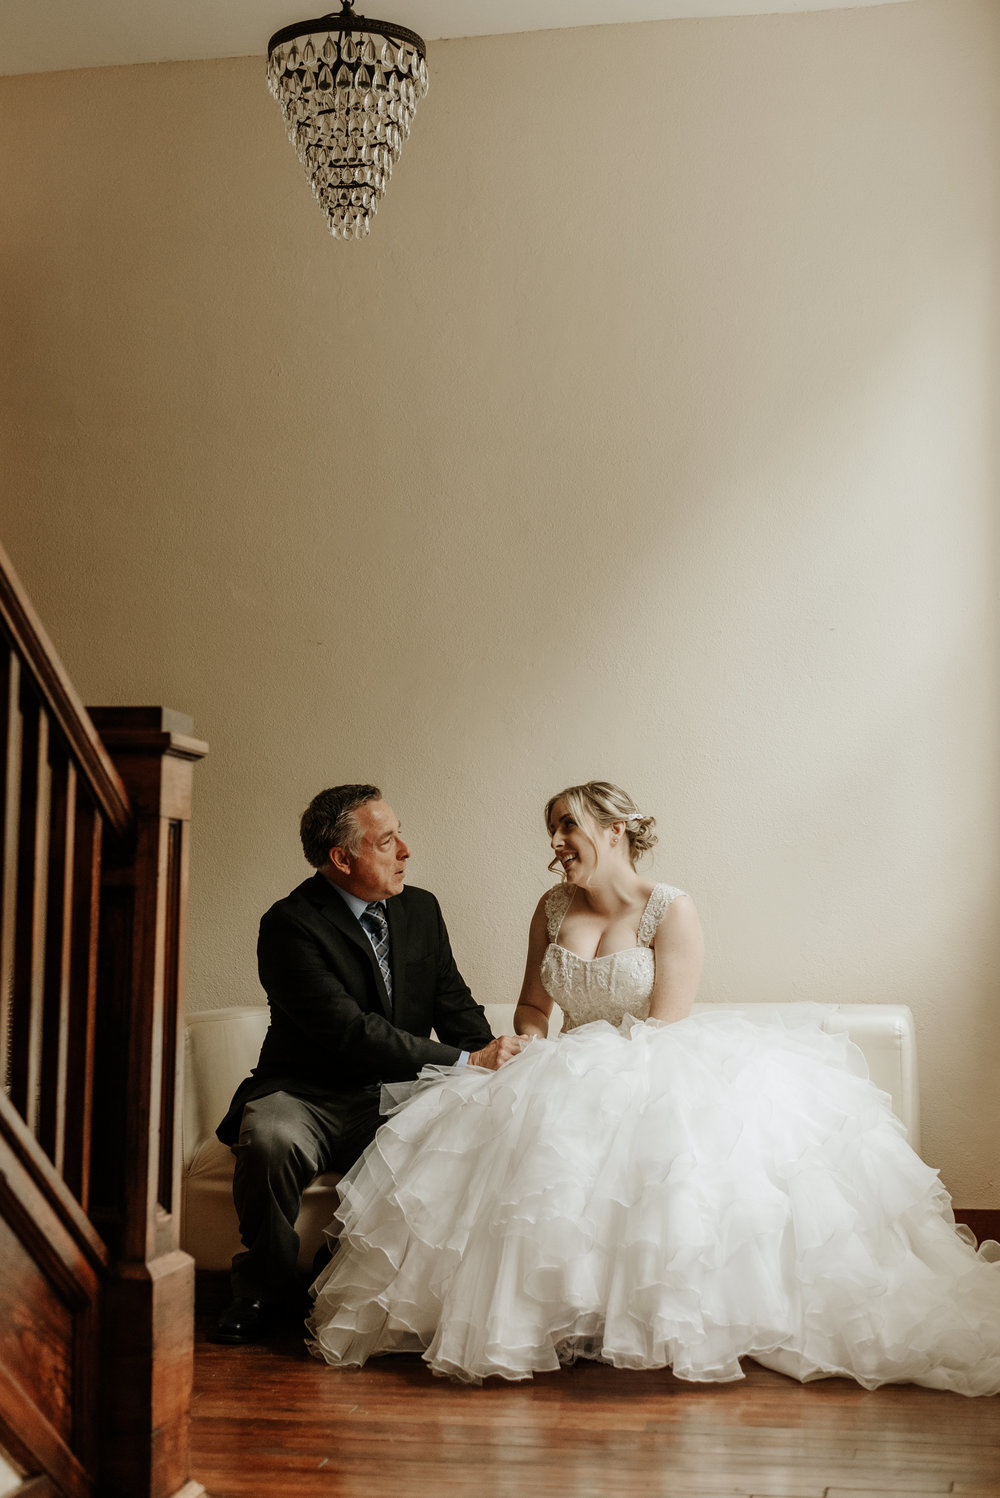 Lauren-Bobby-Wedding-Previews-6875.jpg